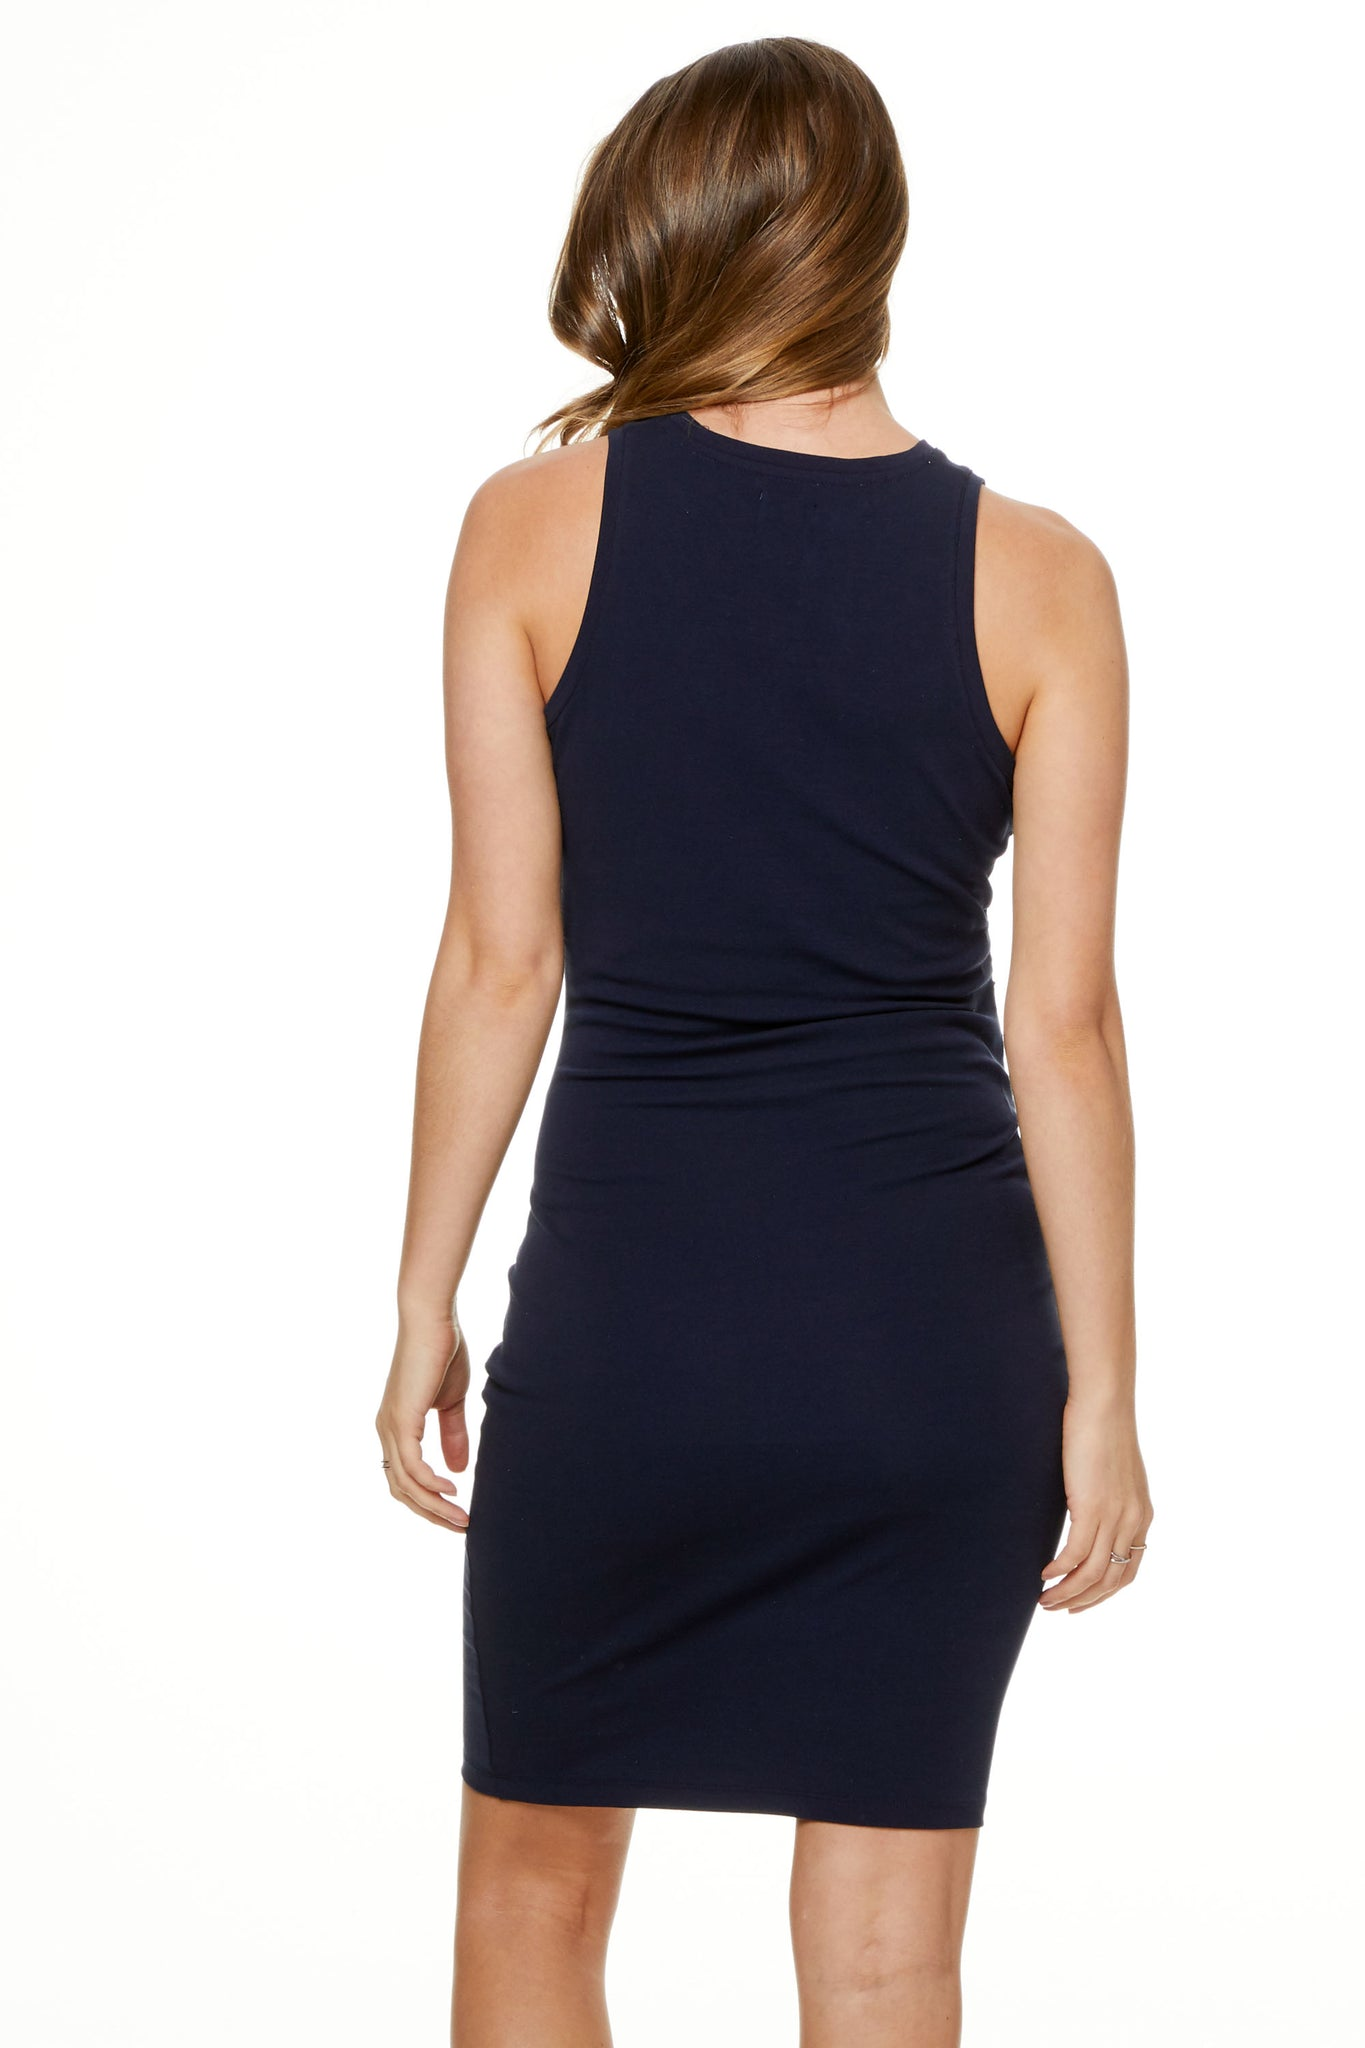 Bodycon Maternity Dress Navy image 10